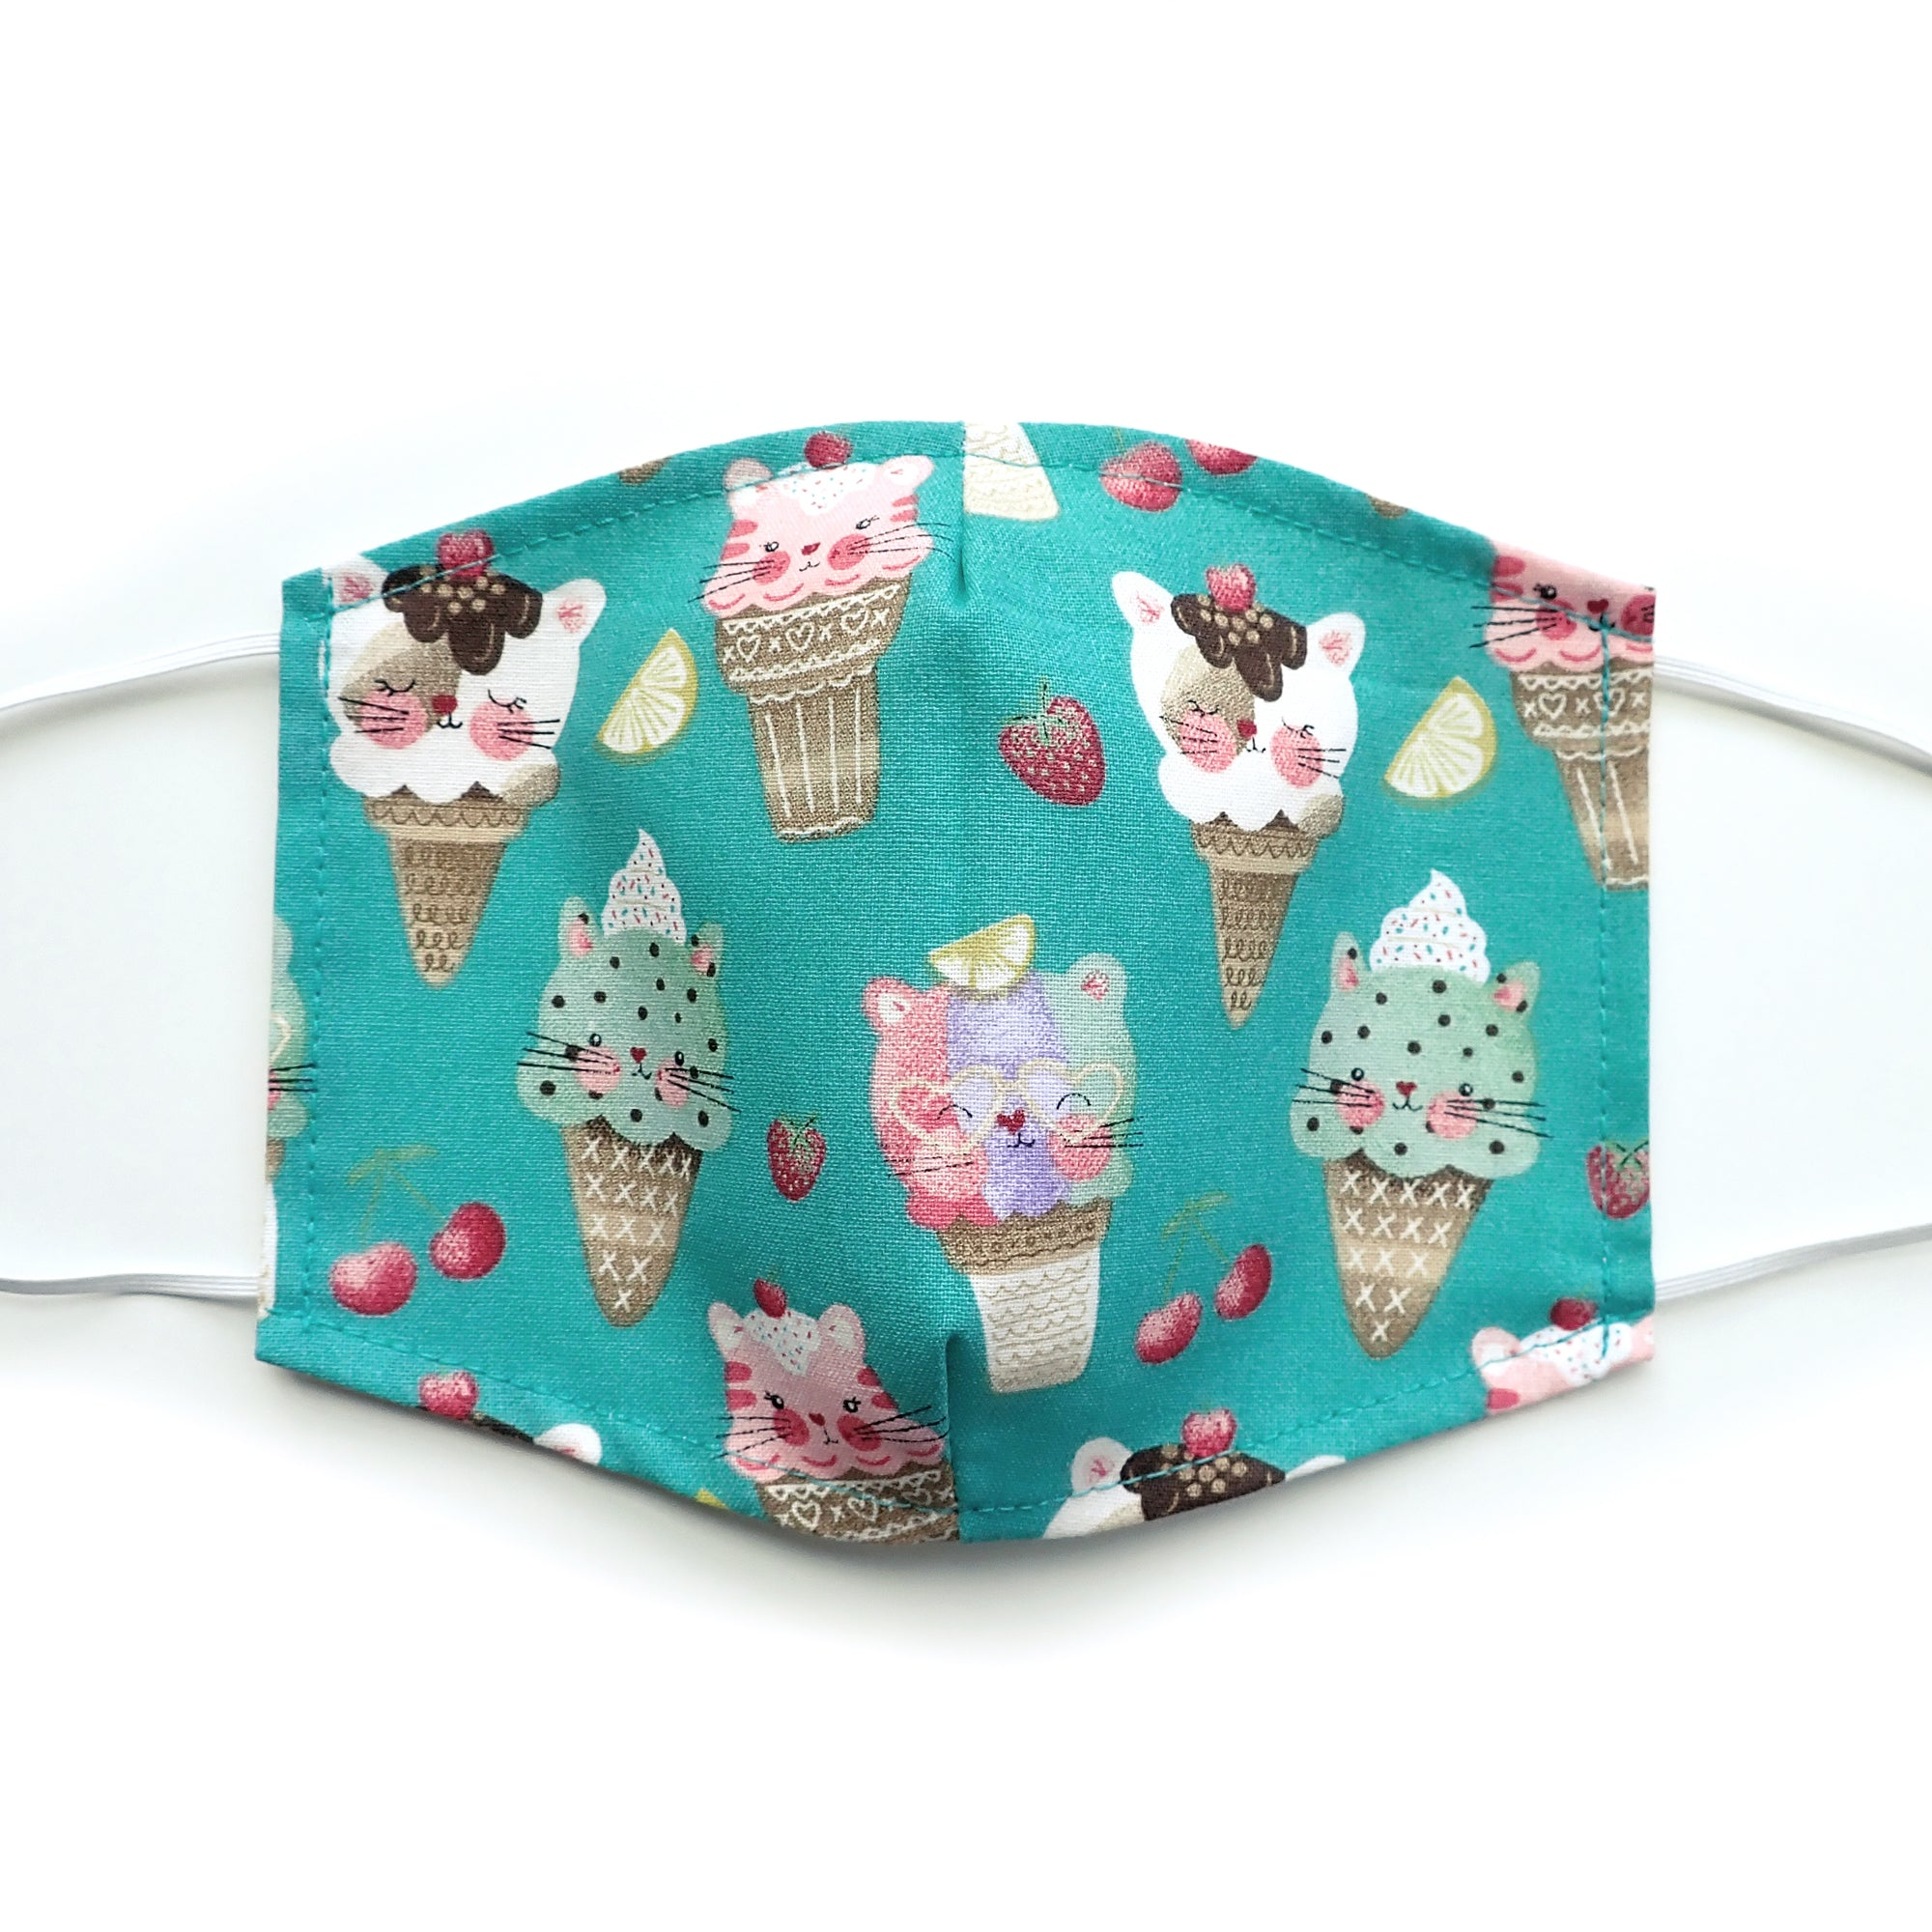 Ice Cream Kitties for cat lovers, 100% Cotton Face Mask, adjustable w/ nose wire & pocket